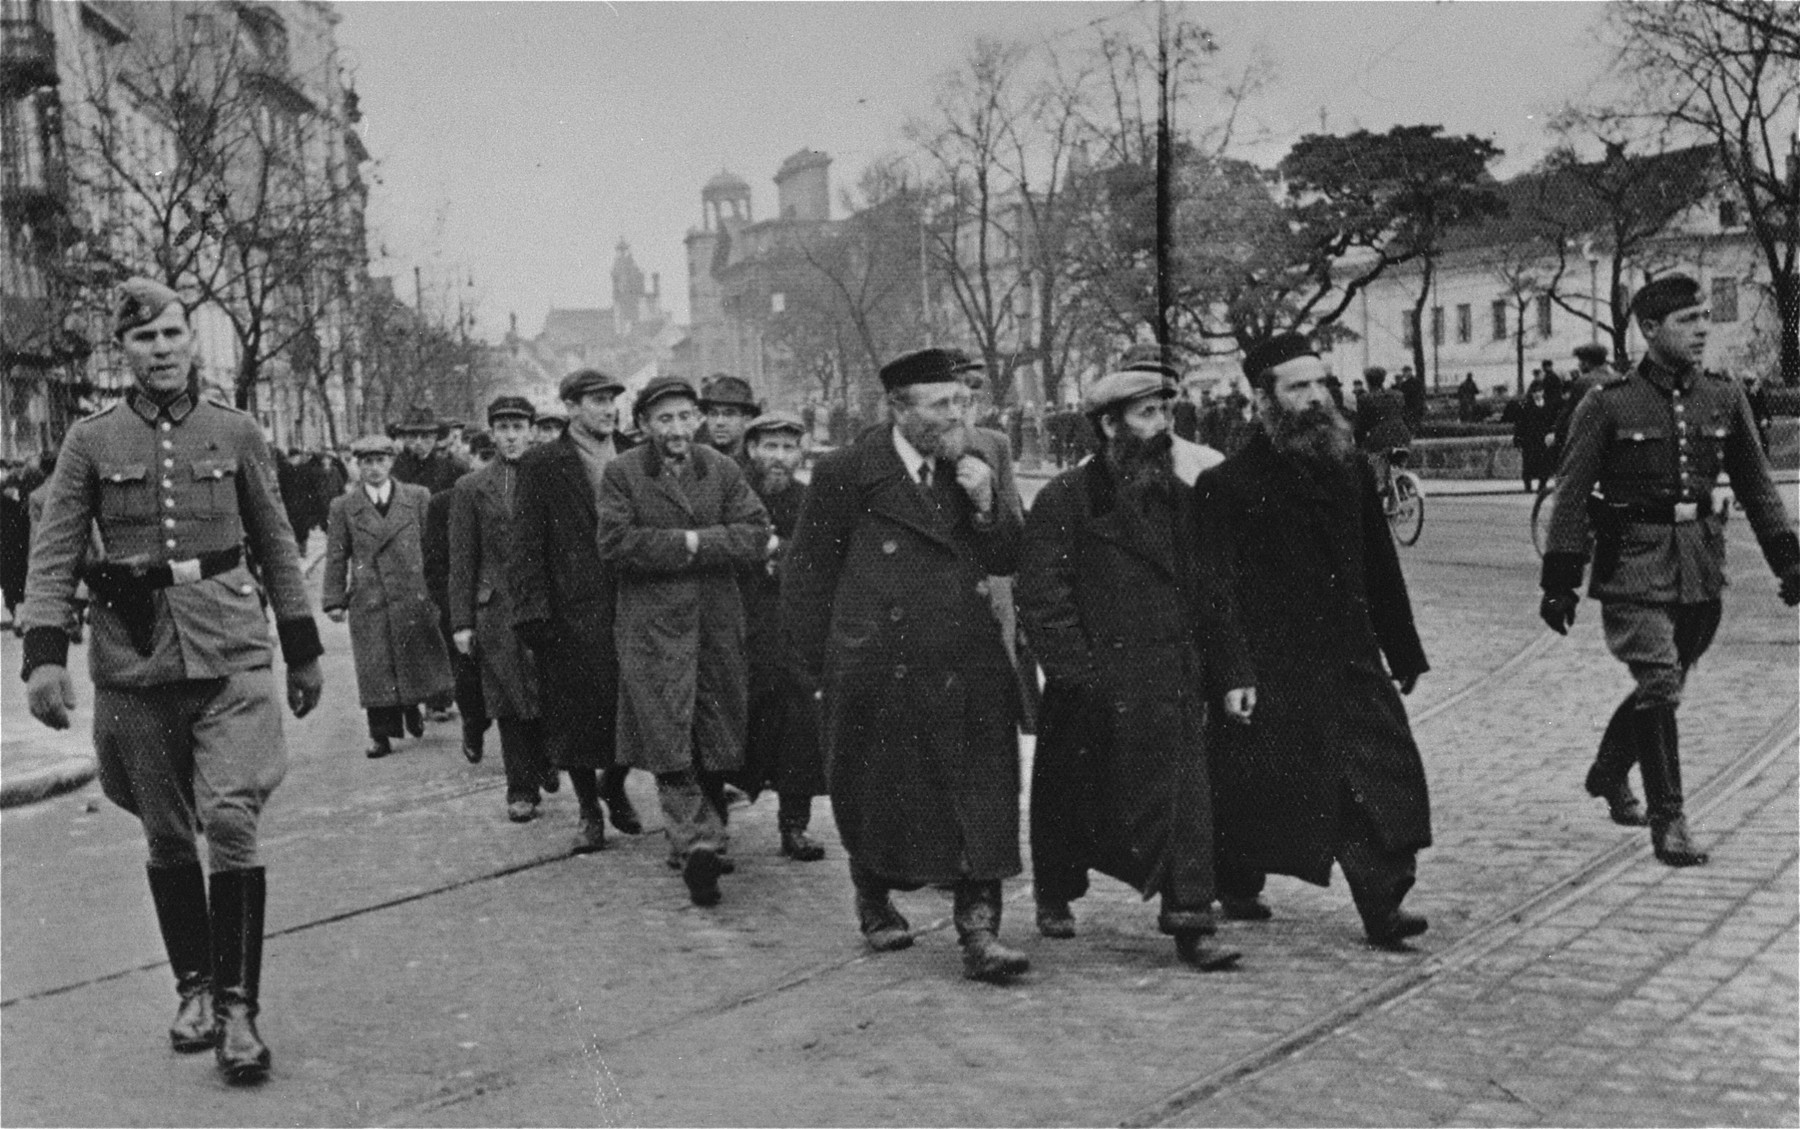 Jewish men who have been rounded-up by German police for forced labor are escorted along Krakowskie Przedmiescie Street to a worksite.